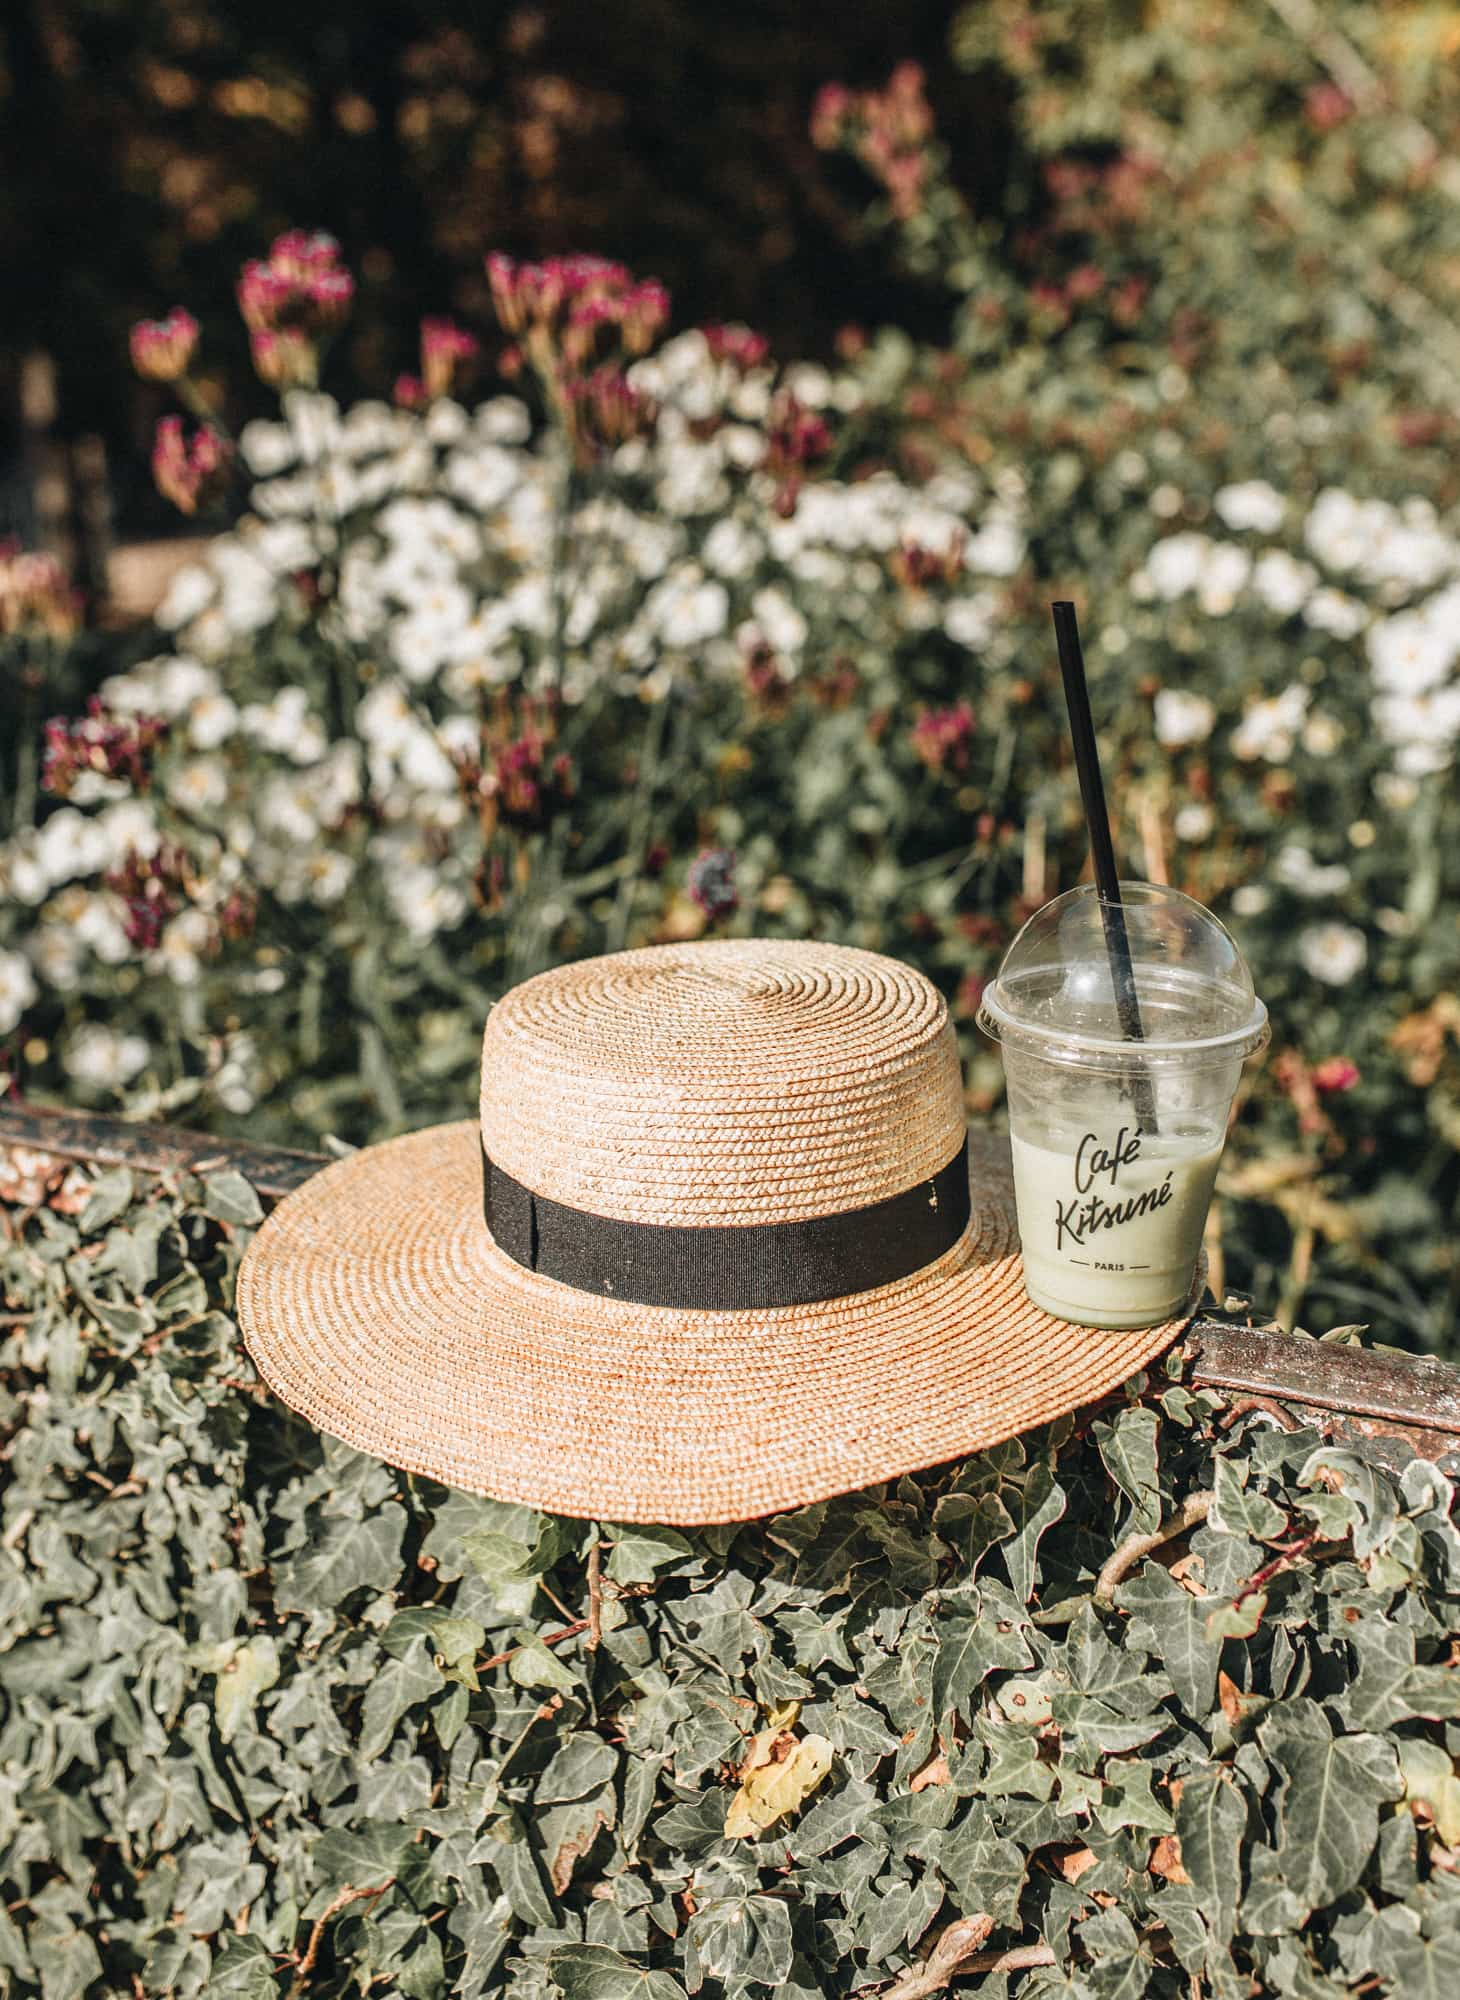 Straw boater hat and matcha tea cafe kitsune